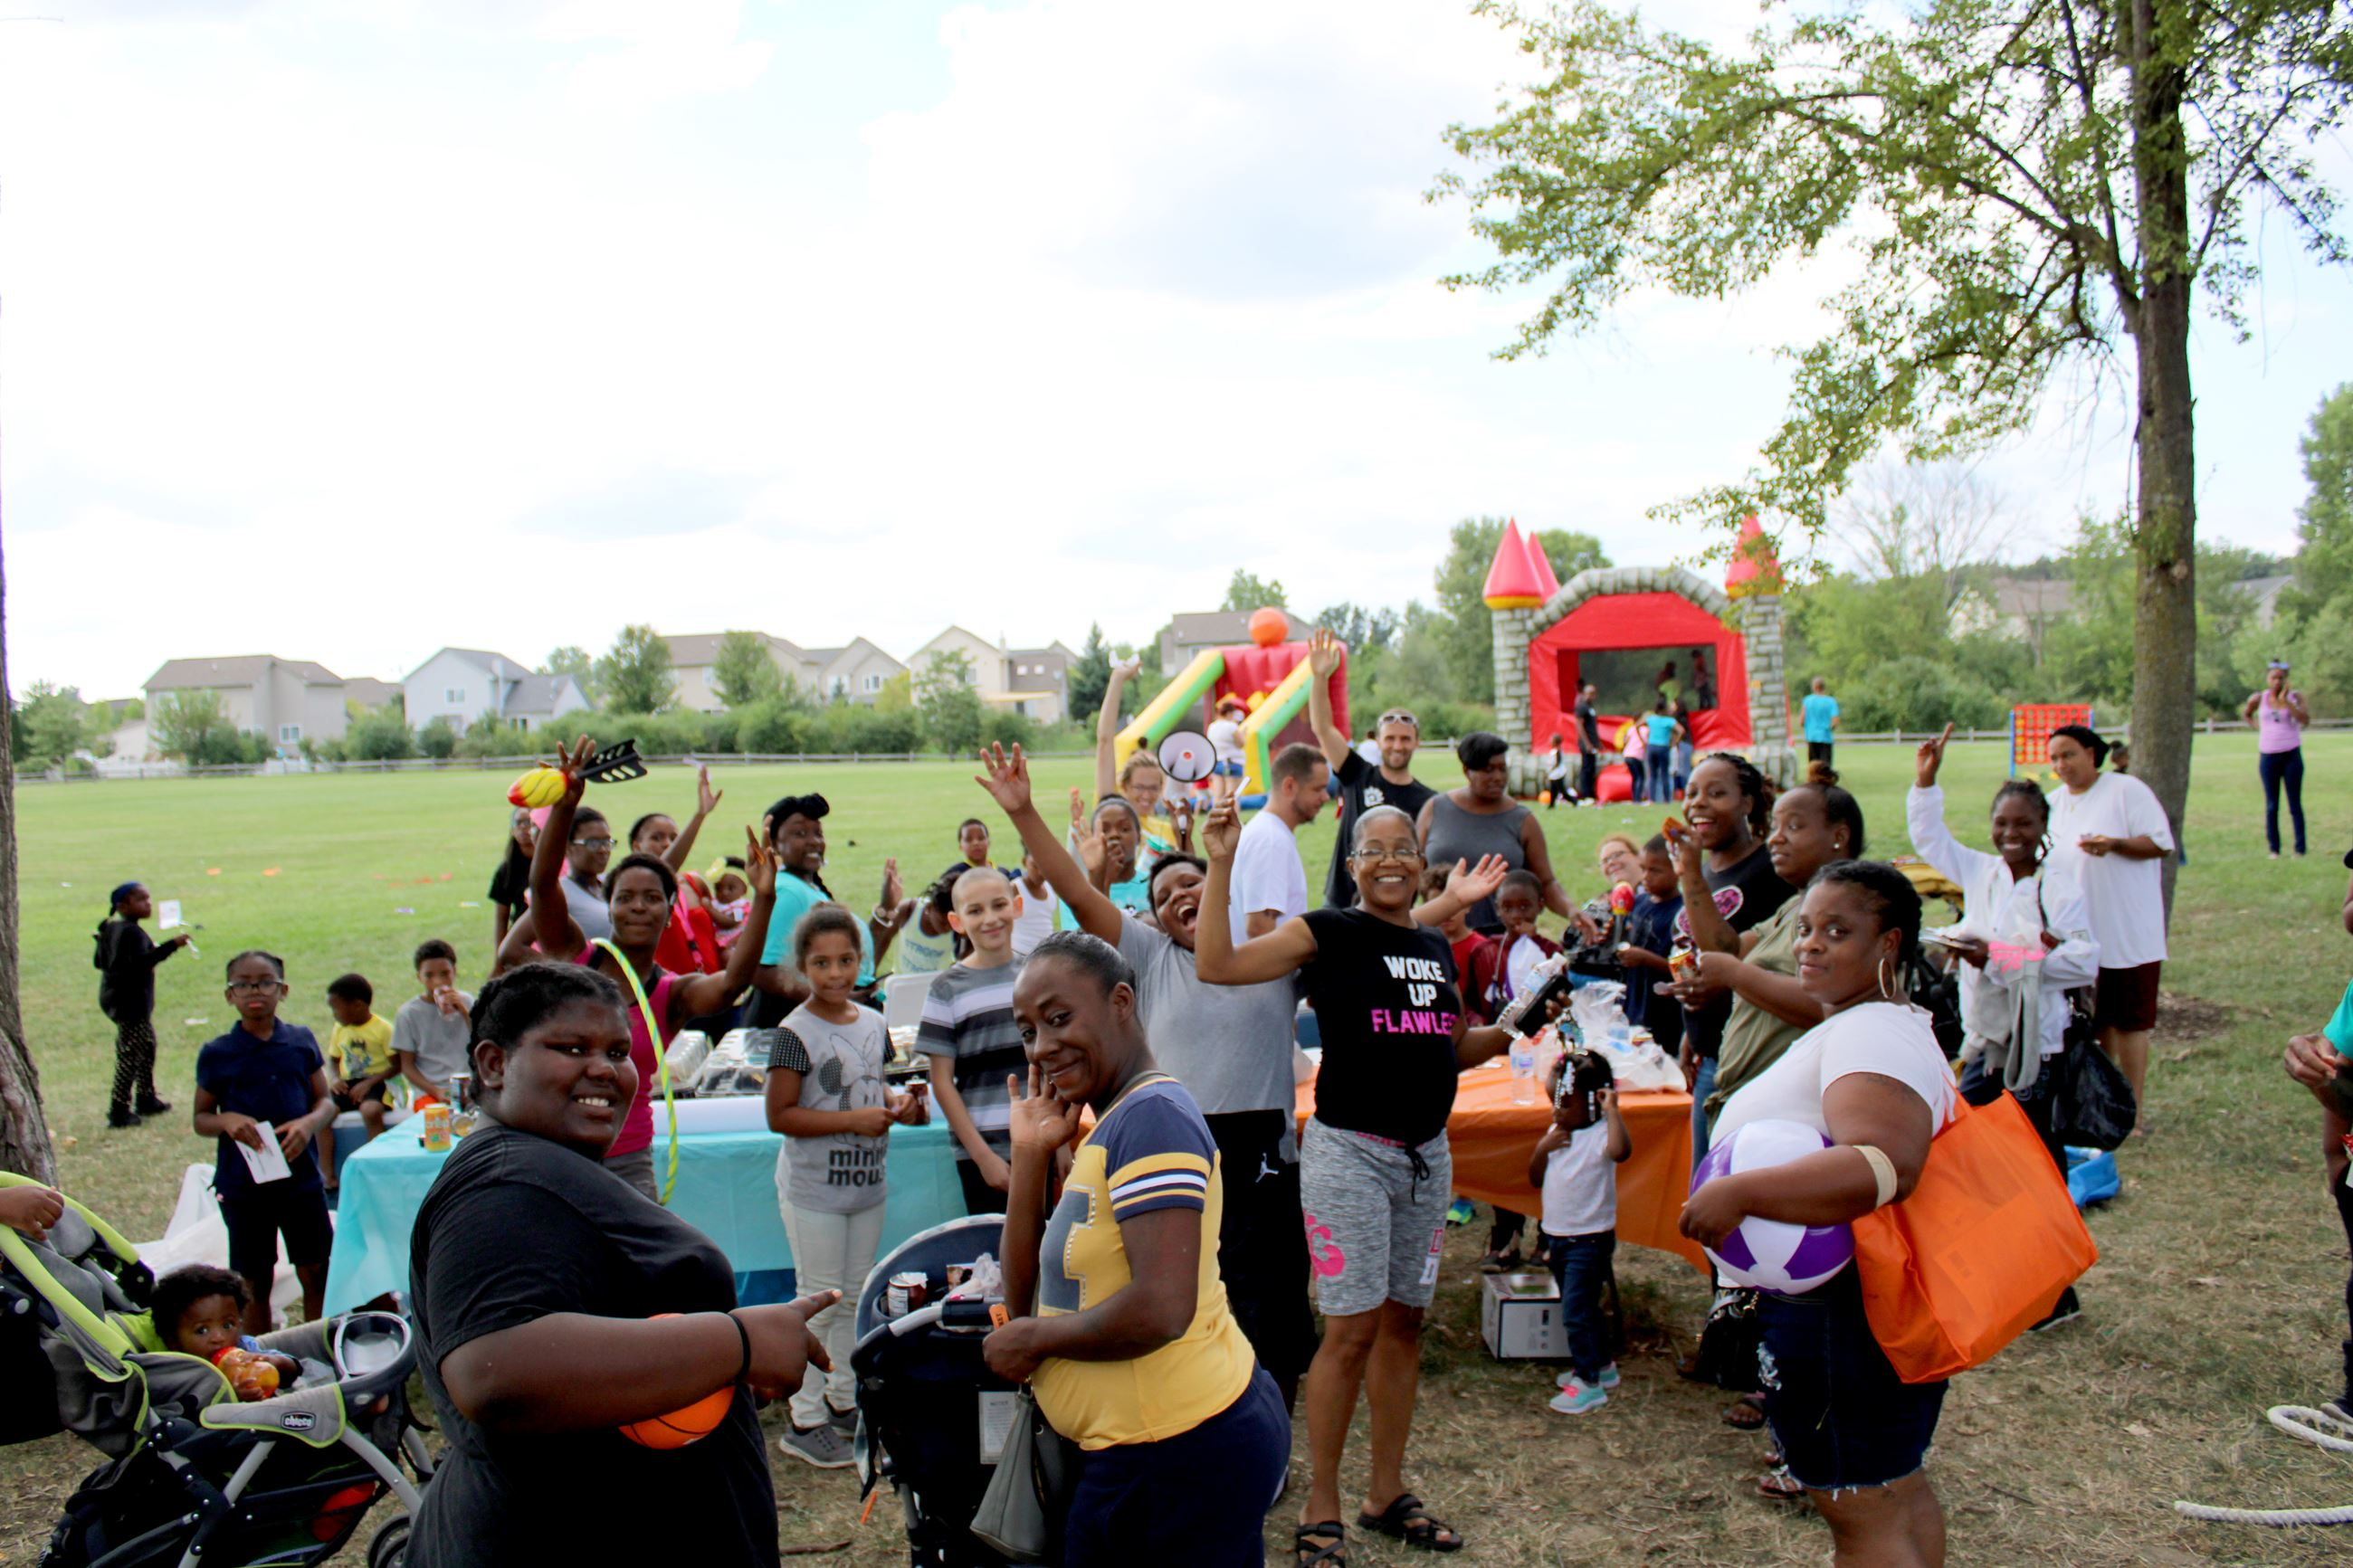 MacArthur Boulevard Community Fun Day, August 2018